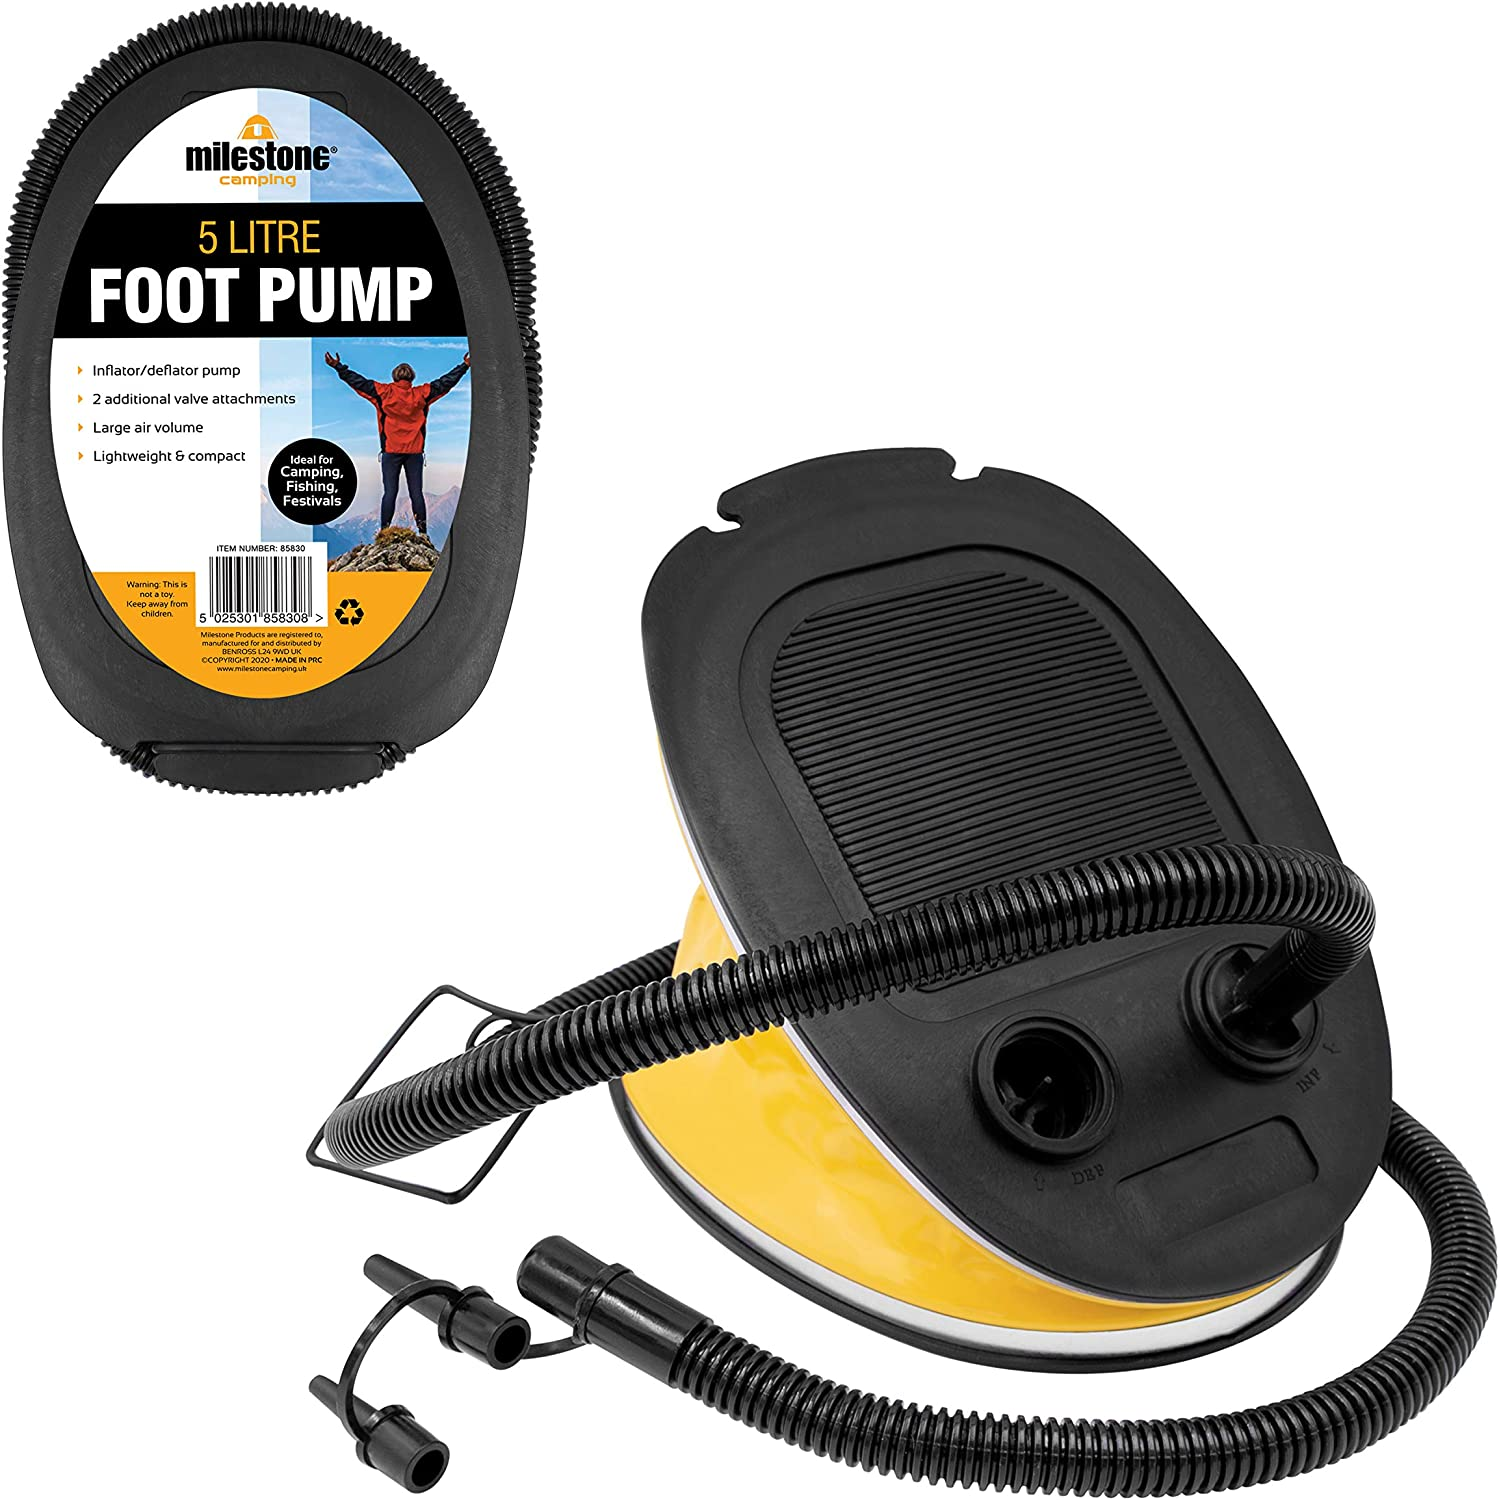 Bellows Foot Pump Bed Toy Inflator and Deflator Yellow 3 Litres Per Minute